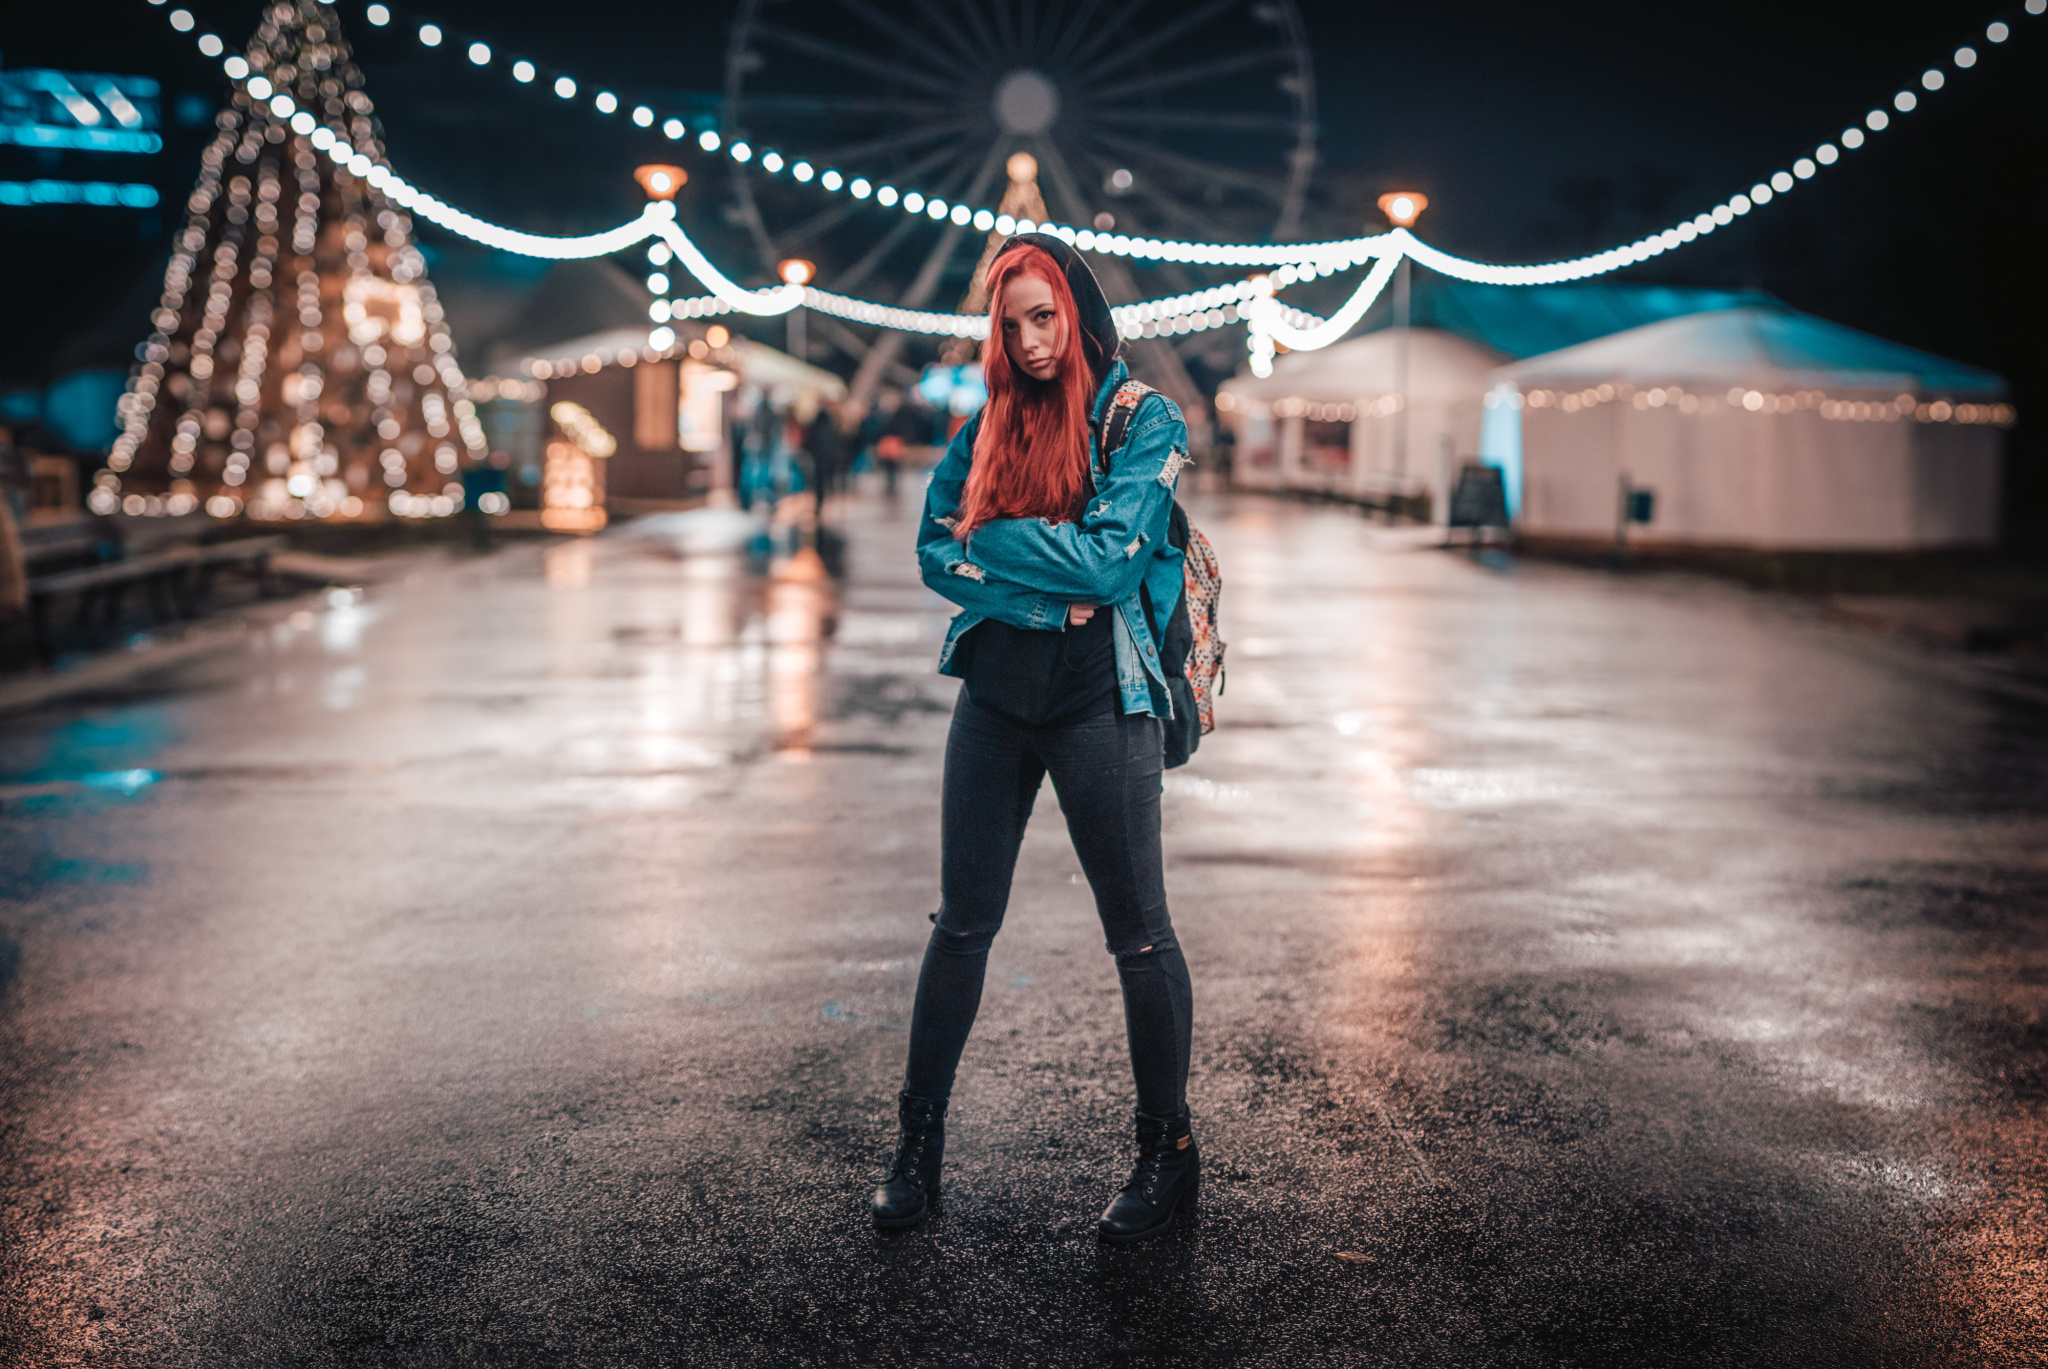 How Can You Get Stronger Bokeh? - girl with wheel in background